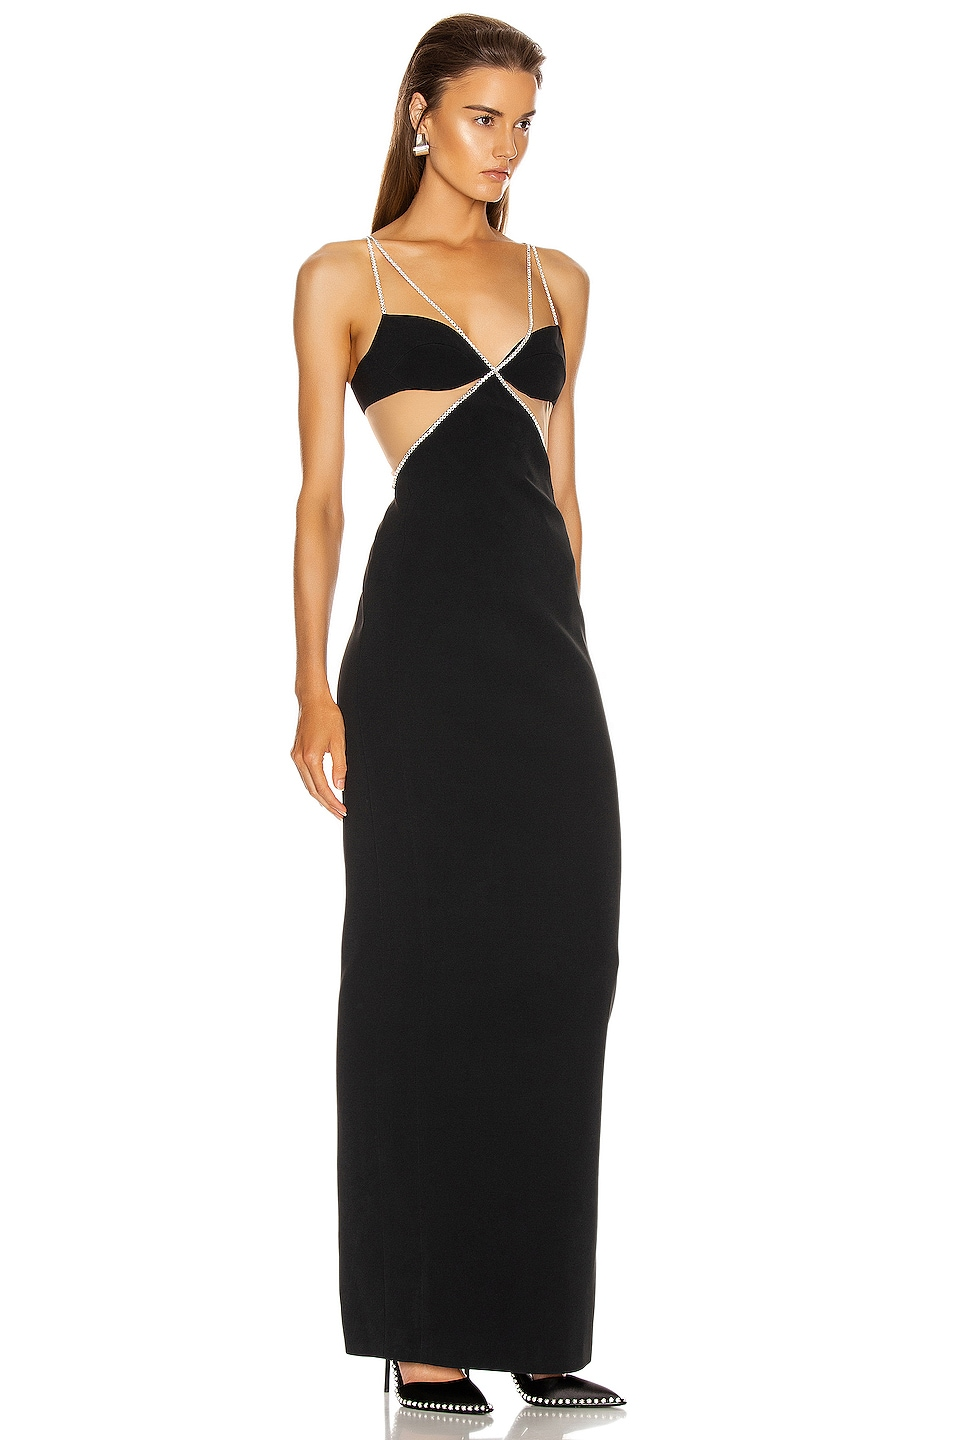 Image 2 of David Koma Crystal Chain Trim Bra Detail Gown in Black & Silver